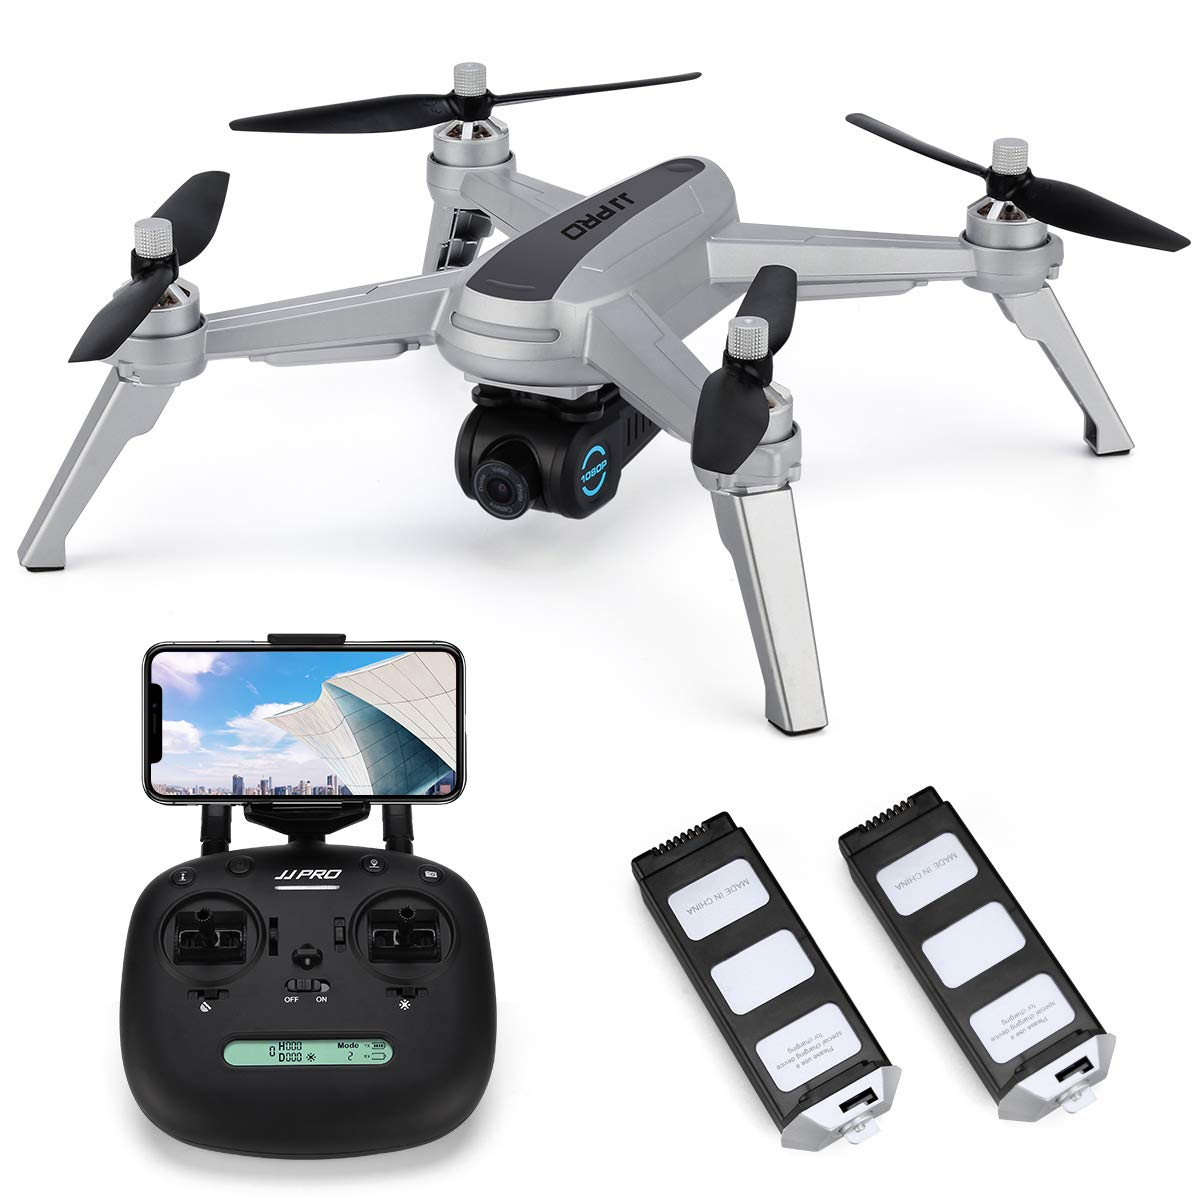 JJRC X5 FPV Drone with 1080P HD Camera Live Video, GPS Return Home Quadcopter with Brushless Motor & 90°Adjustable Camera,Drone for Adults,Follow Me, Flight Surround Me, Long Control Range (Gray)